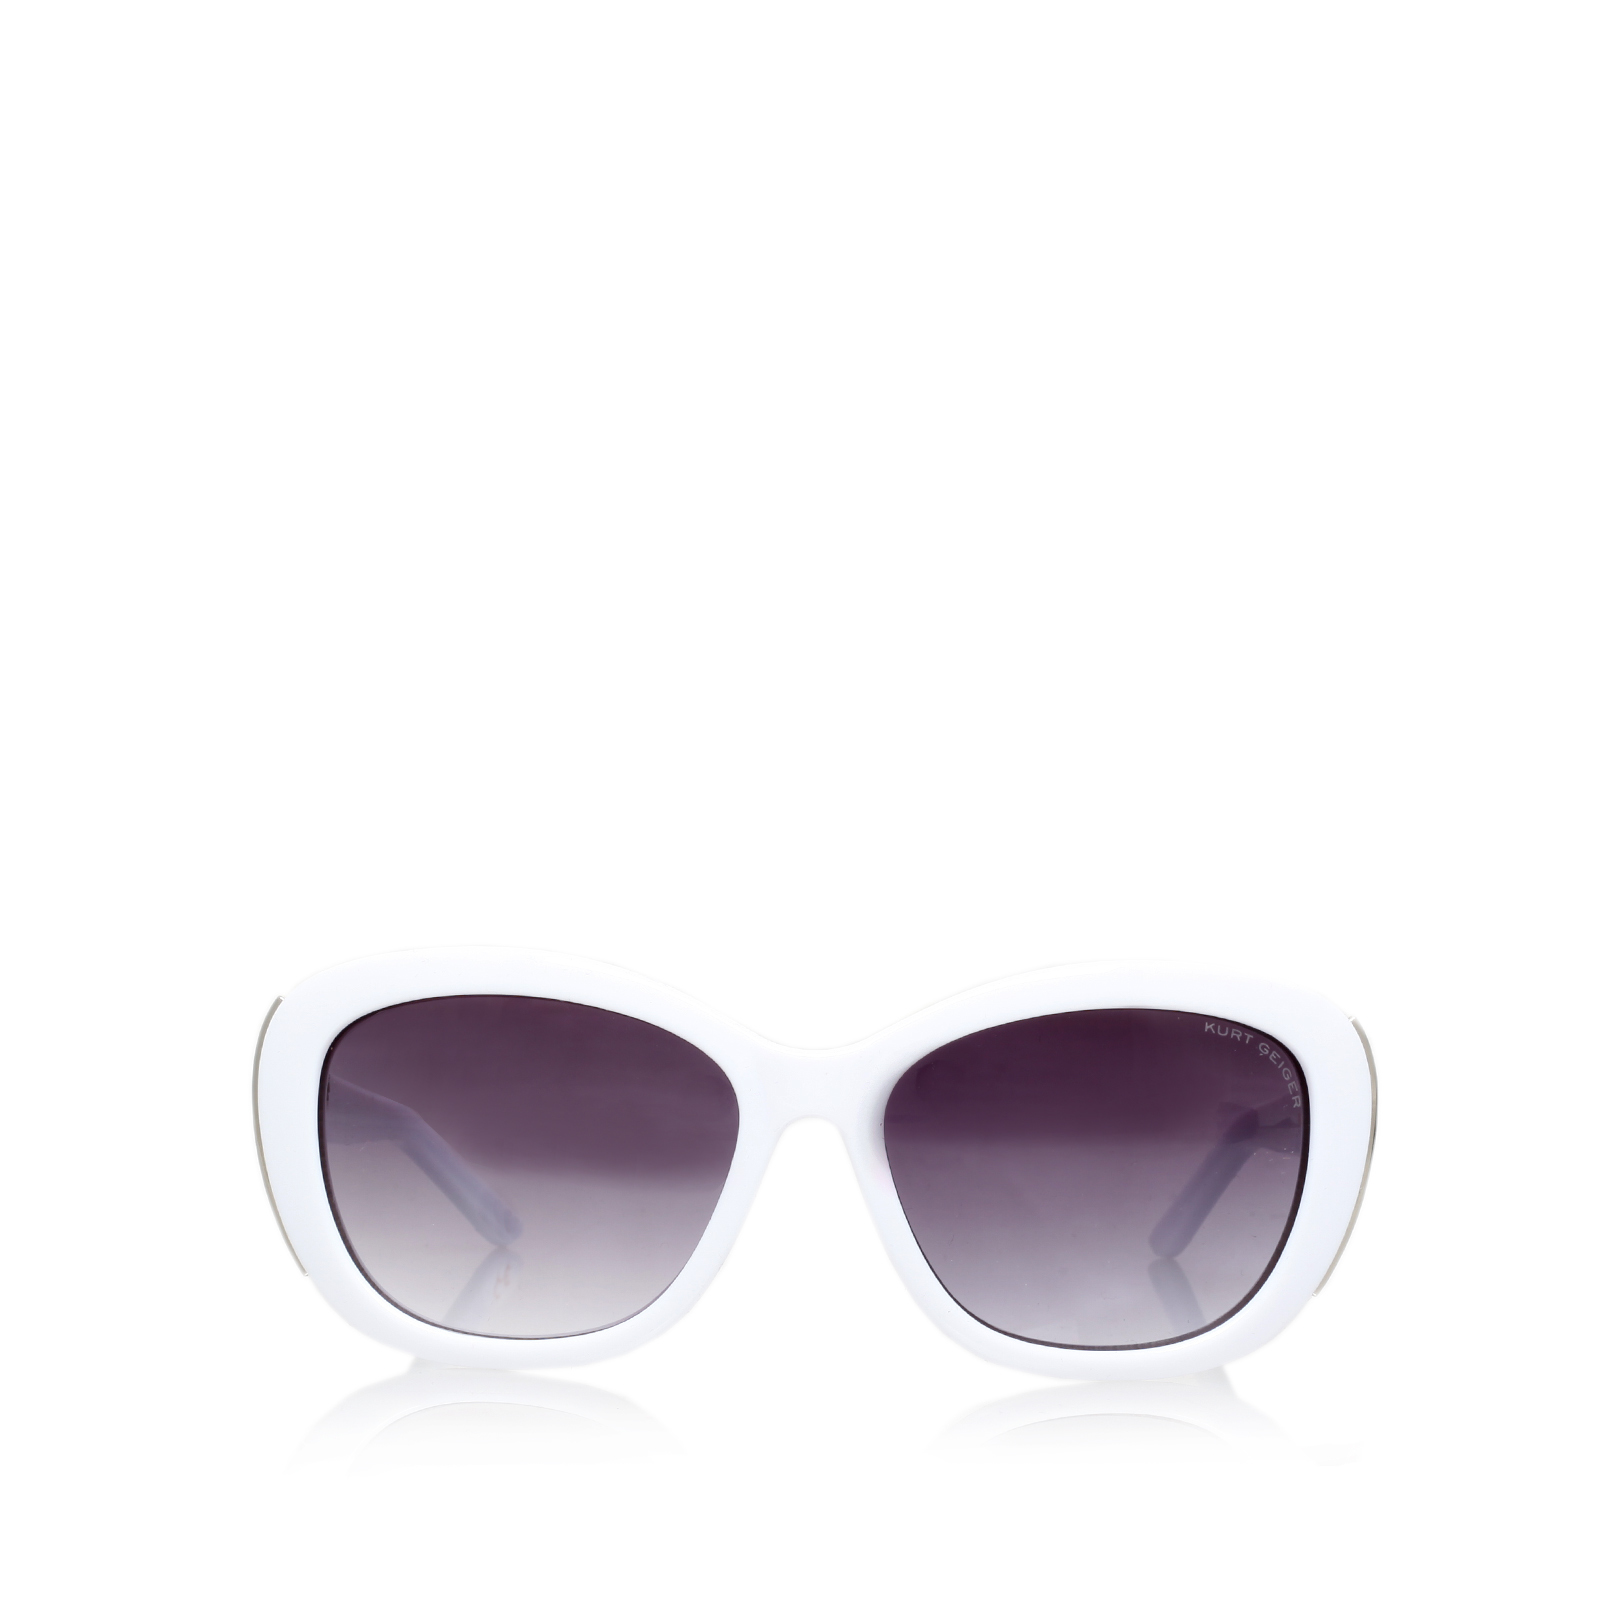 ACETATE OVAL SUNGLASSES